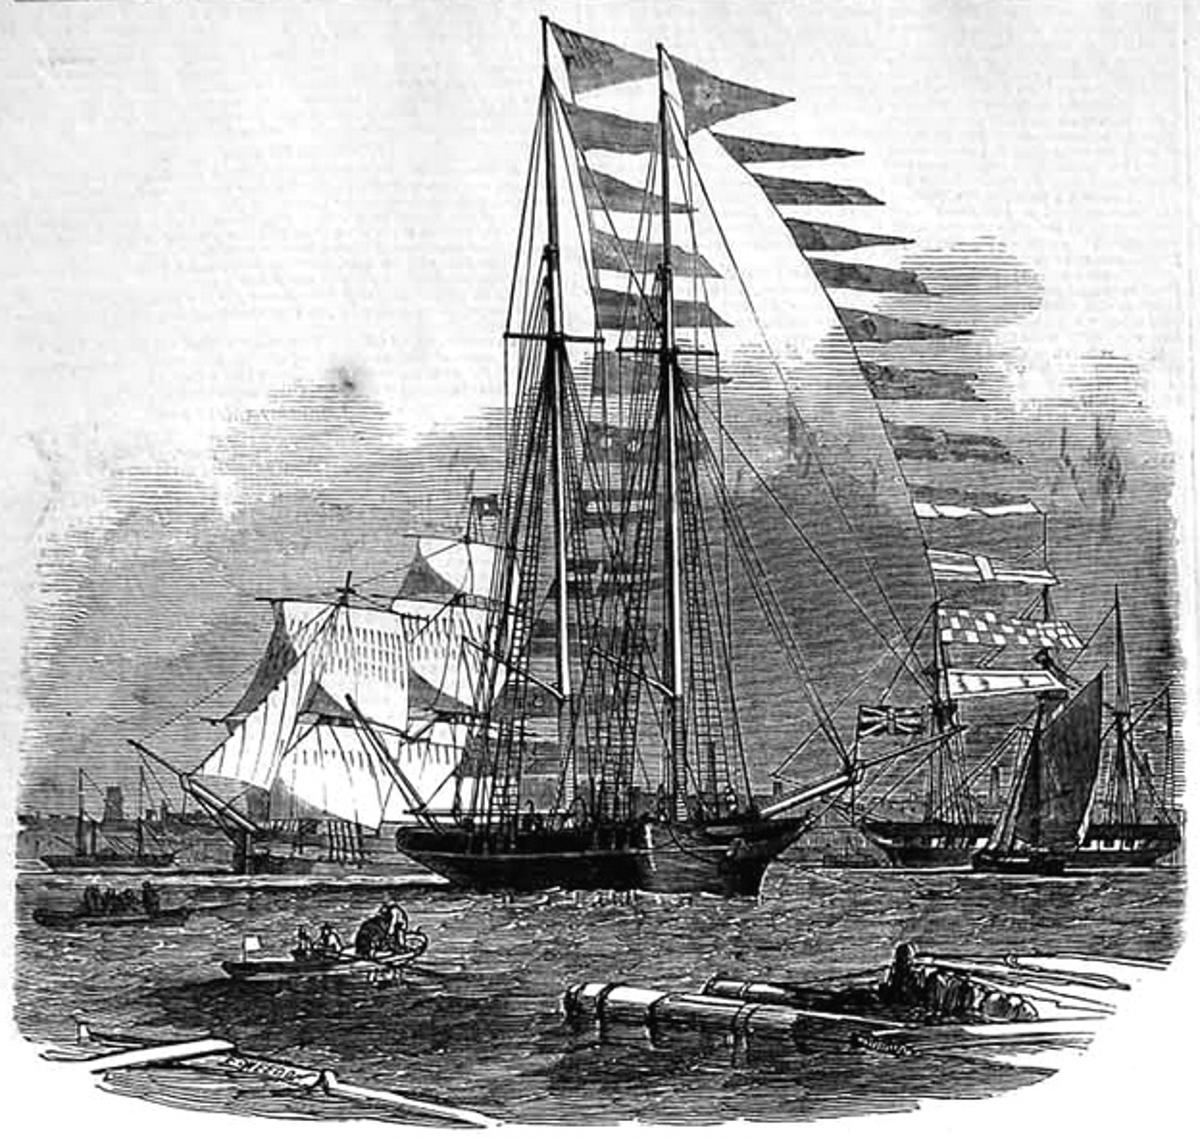 The original Titania, as pictured by the Illustrated London News in 1850